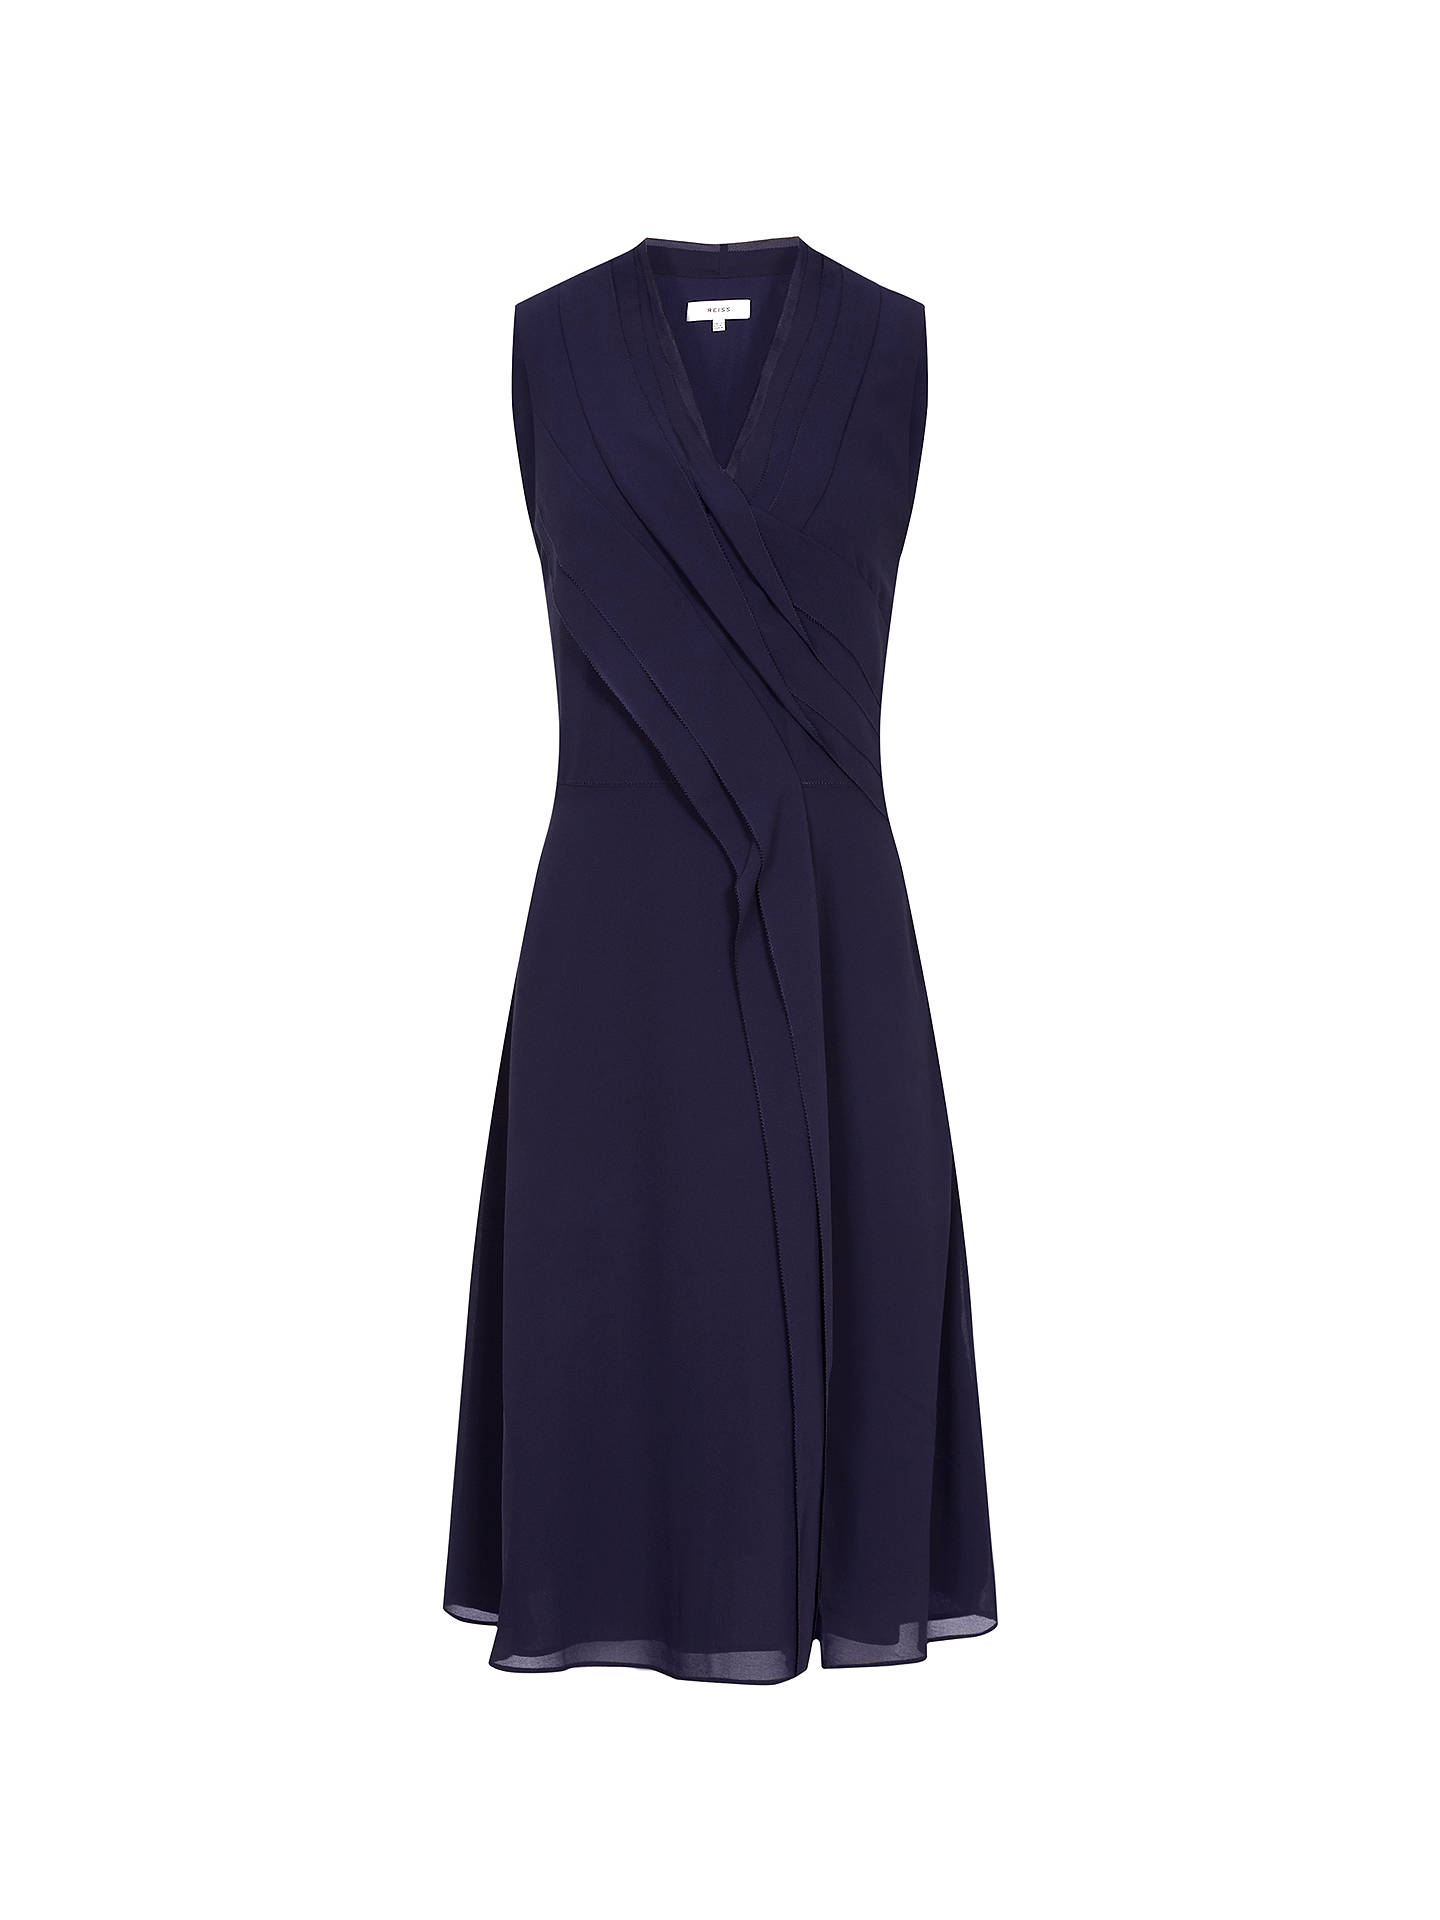 Buy Reiss Alana Pleat Dress, Navy, 6 Online at johnlewis.com